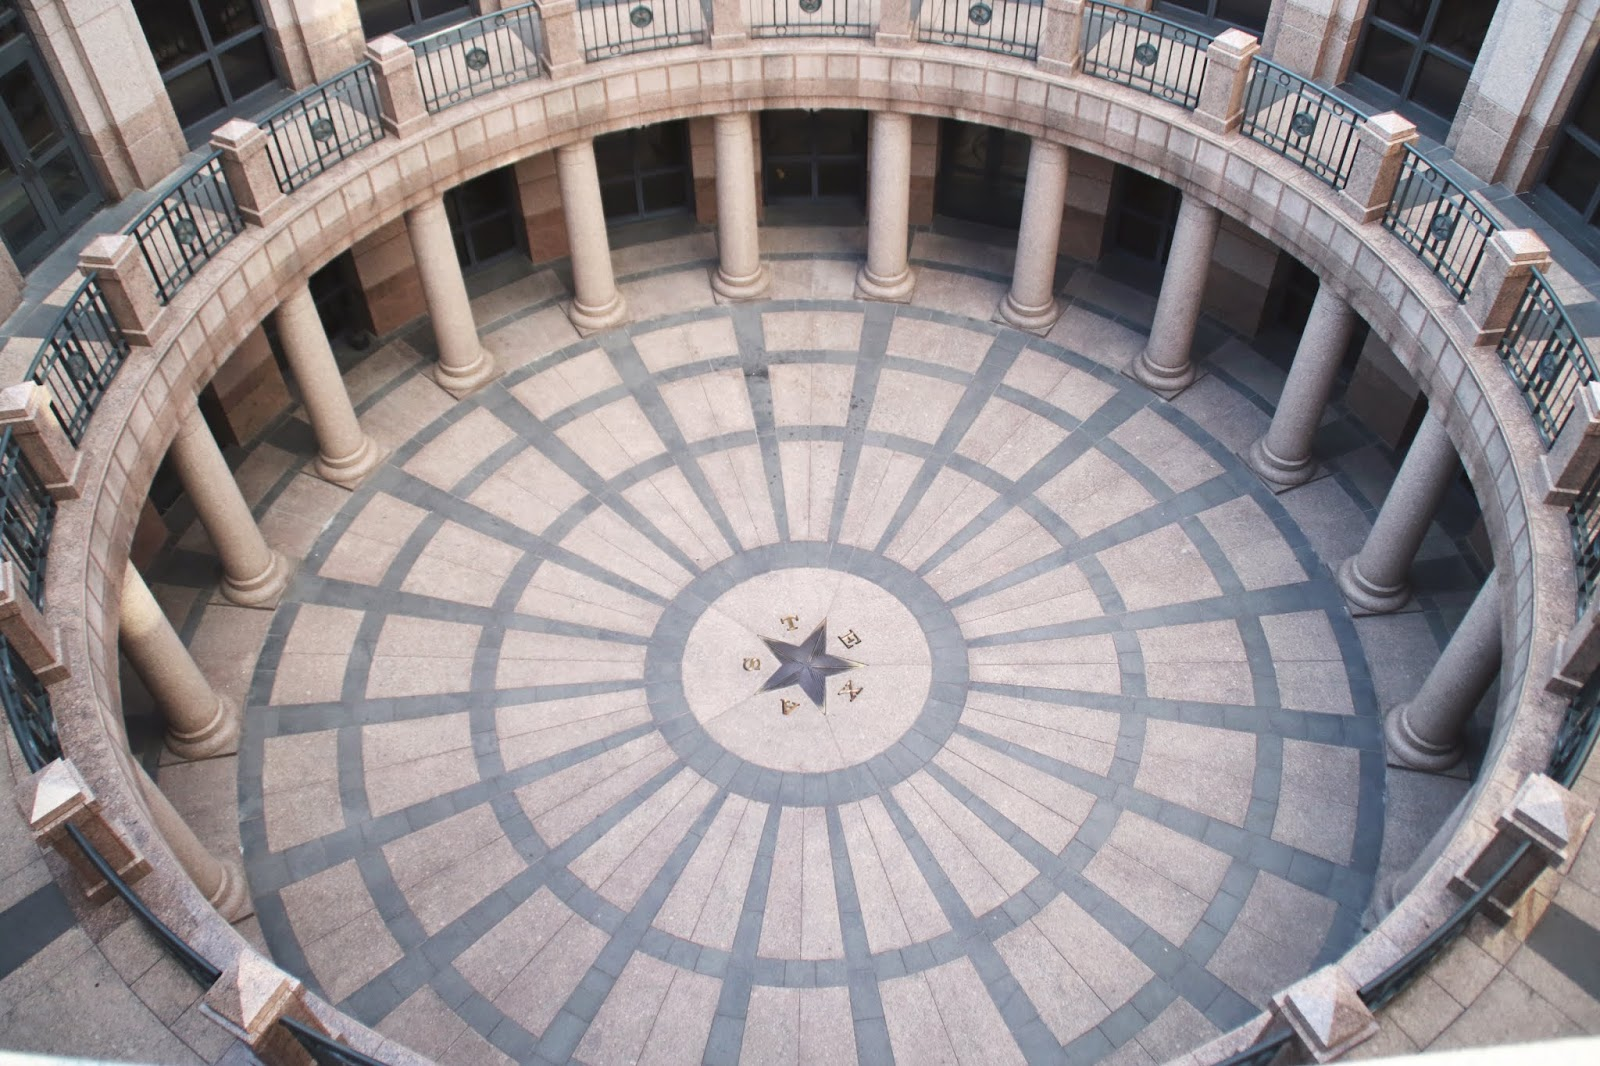 texas state capitol, capitol austin texas, architecture, history in austin texas, visit austin